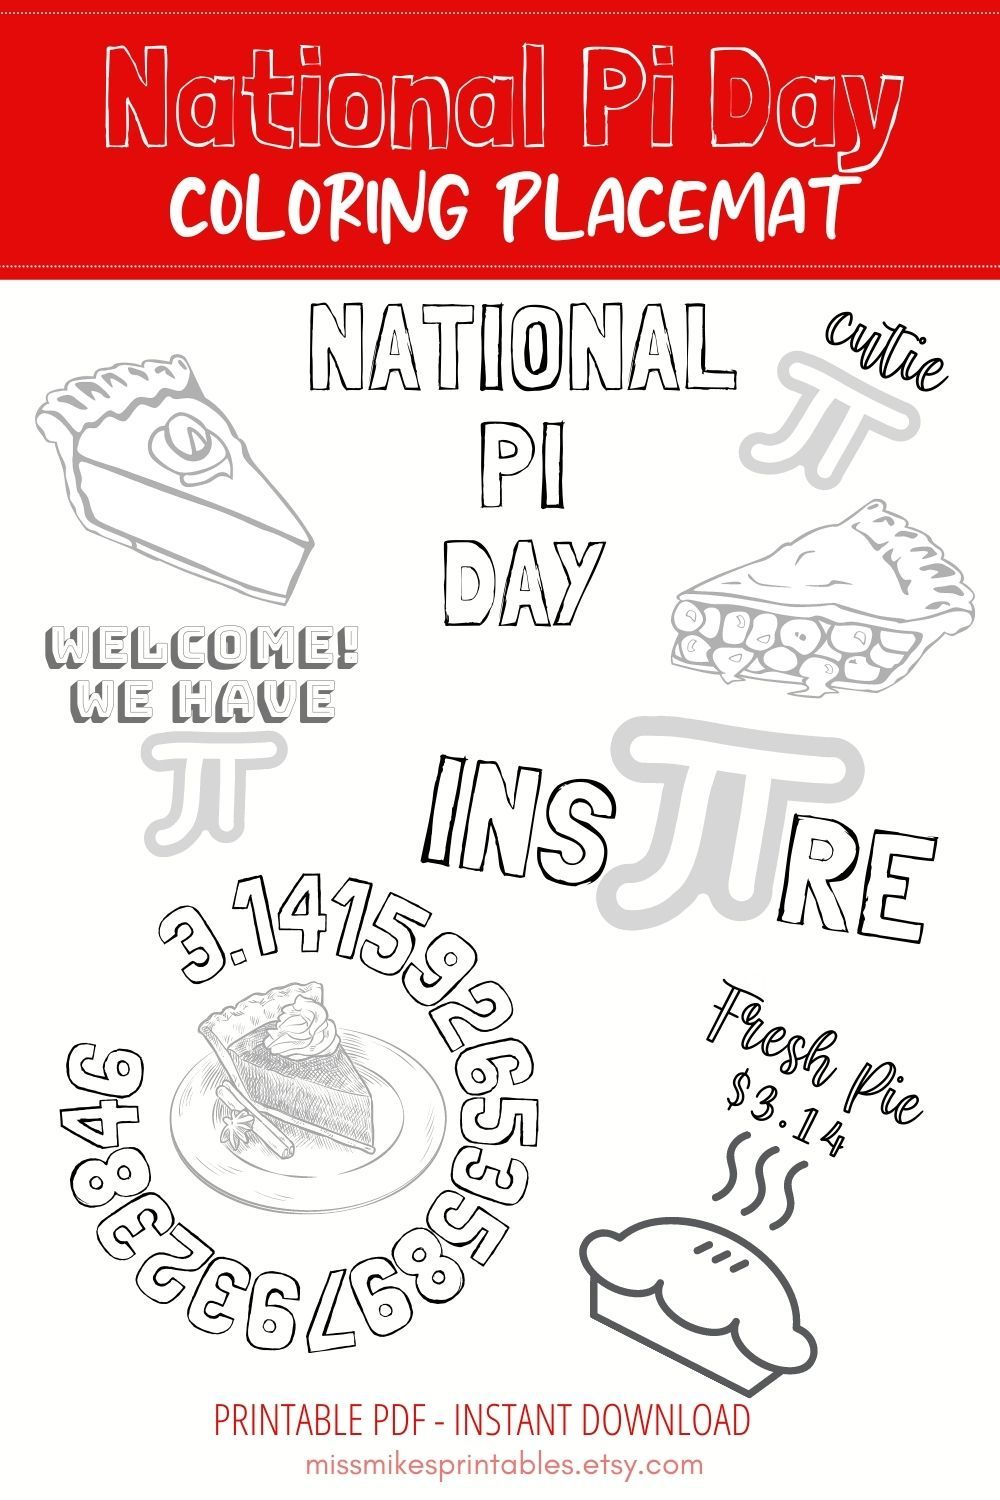 National Pi Day Printable Coloring Placemat Coloring Placemat Etsy In 2021 Printable Coloring Coloring Placemats Printables [ 1500 x 1000 Pixel ]